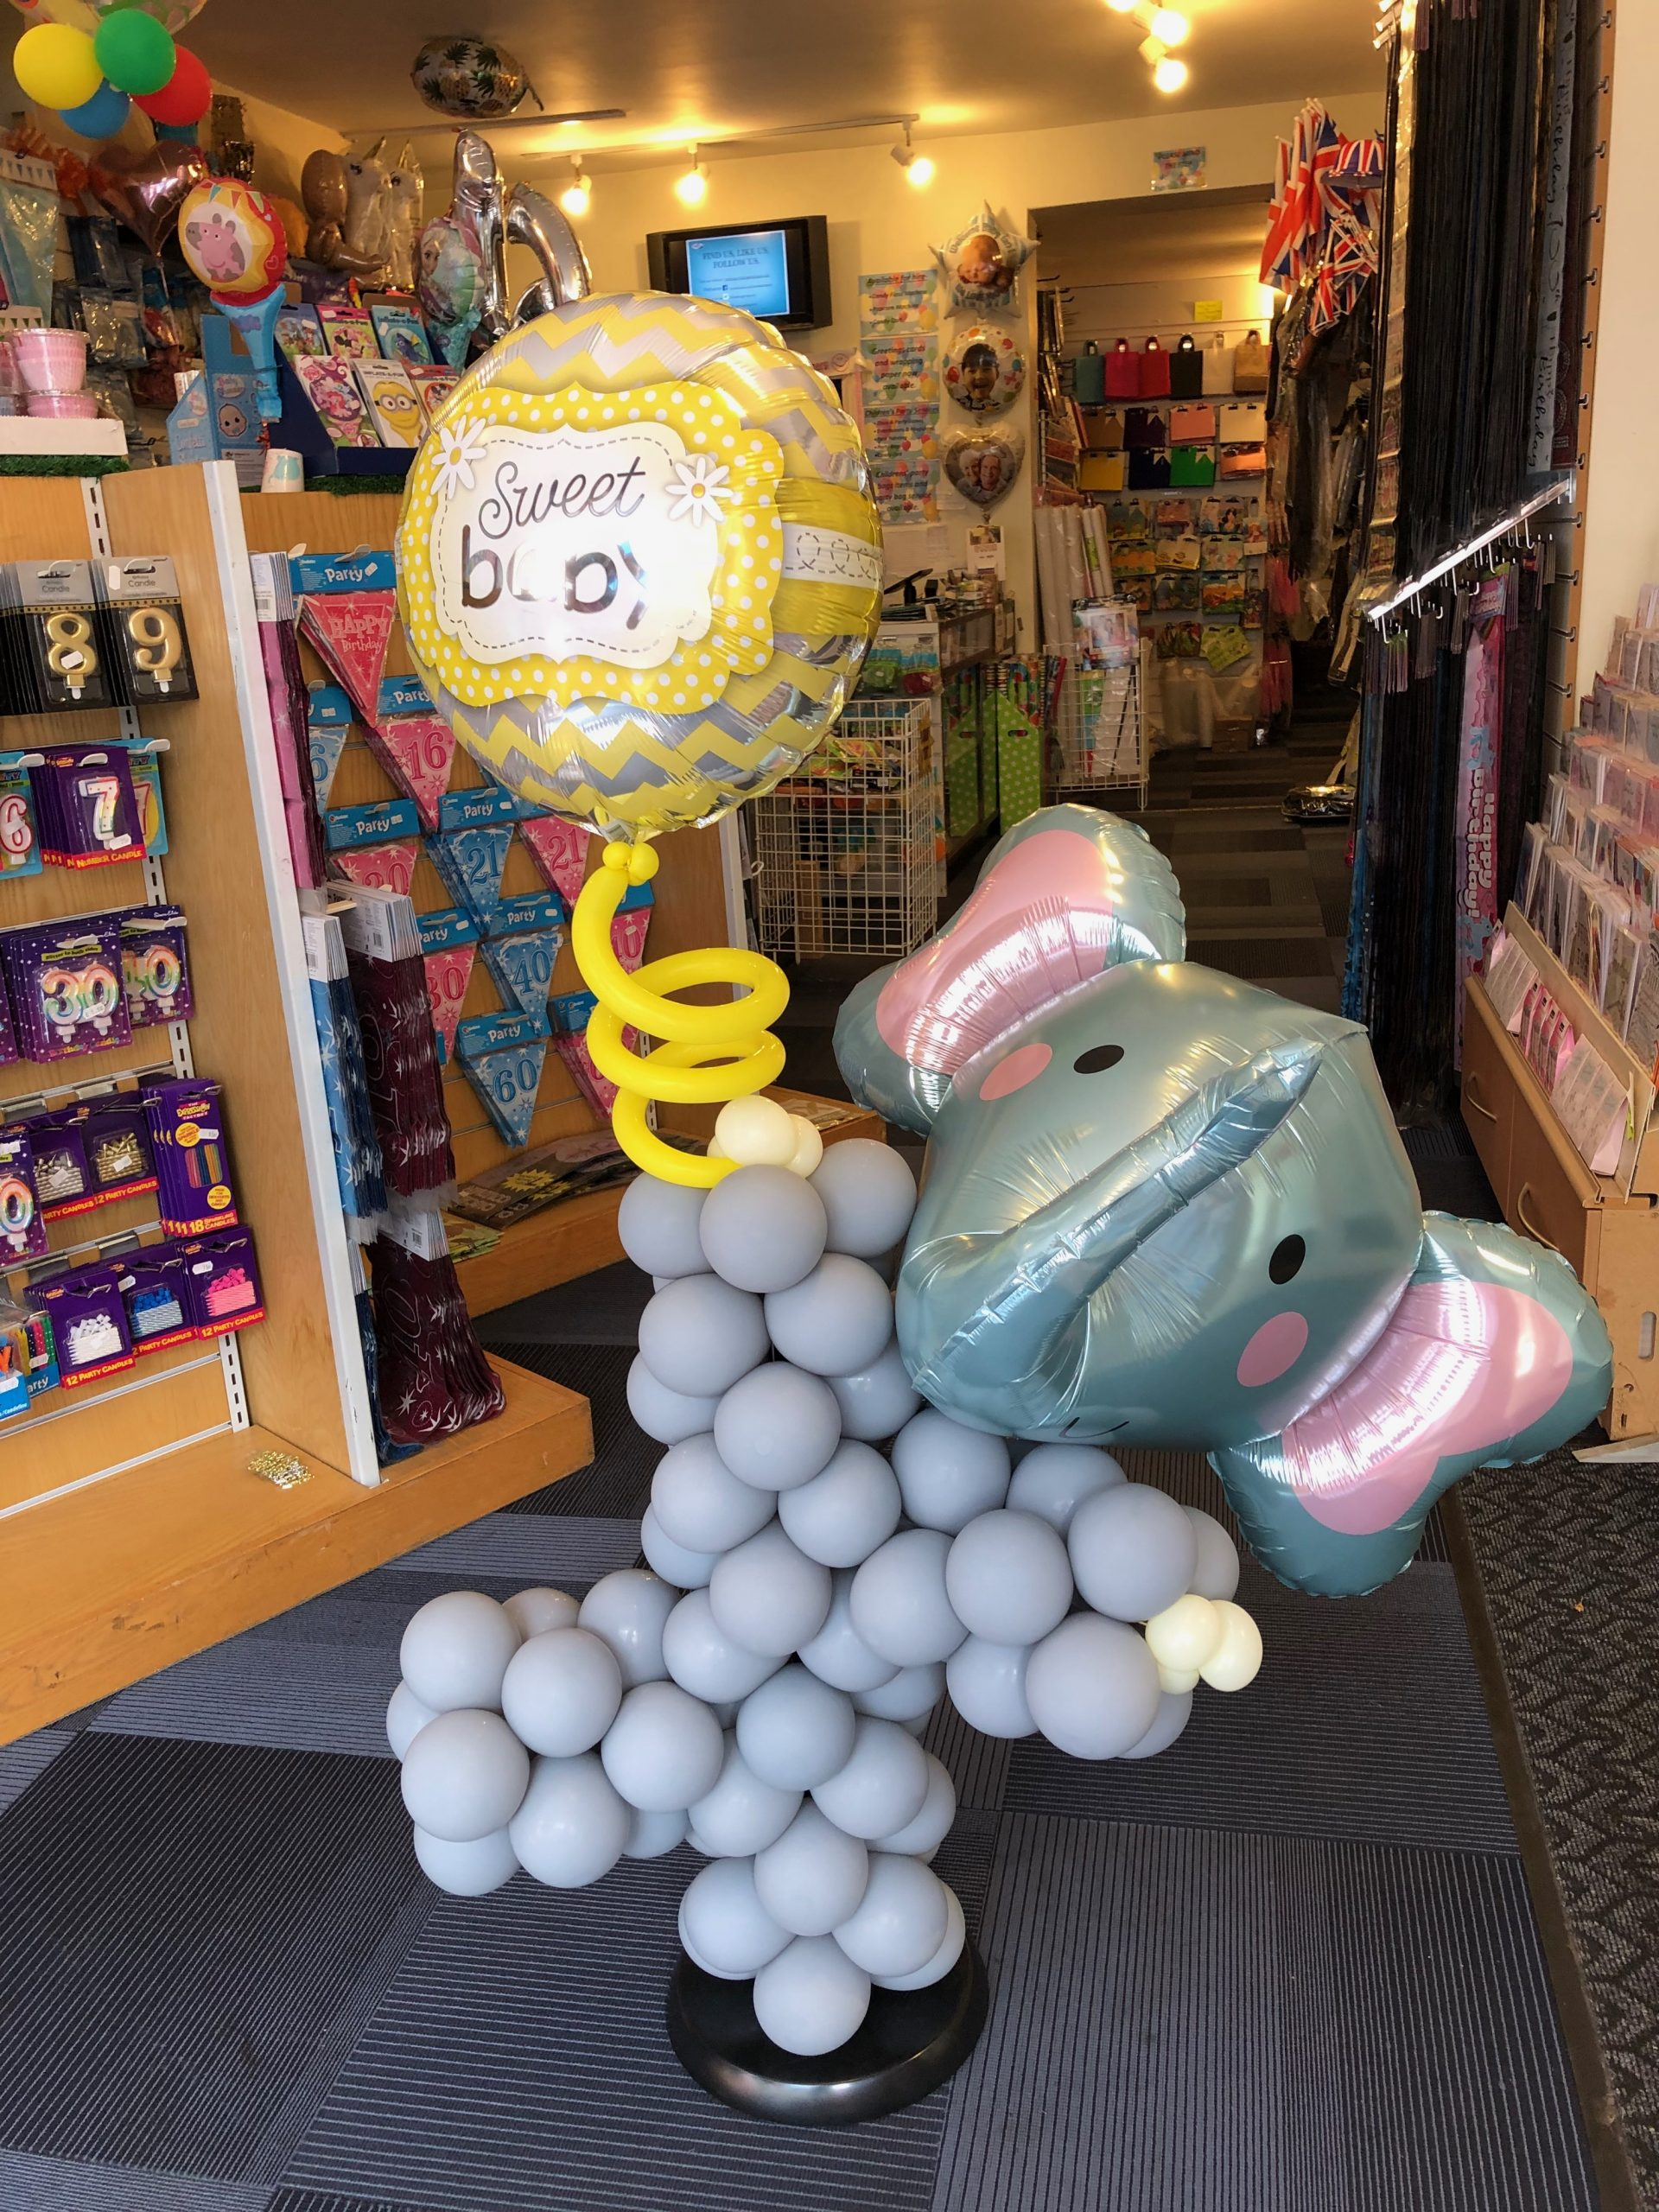 Balloon elephant with 3D head